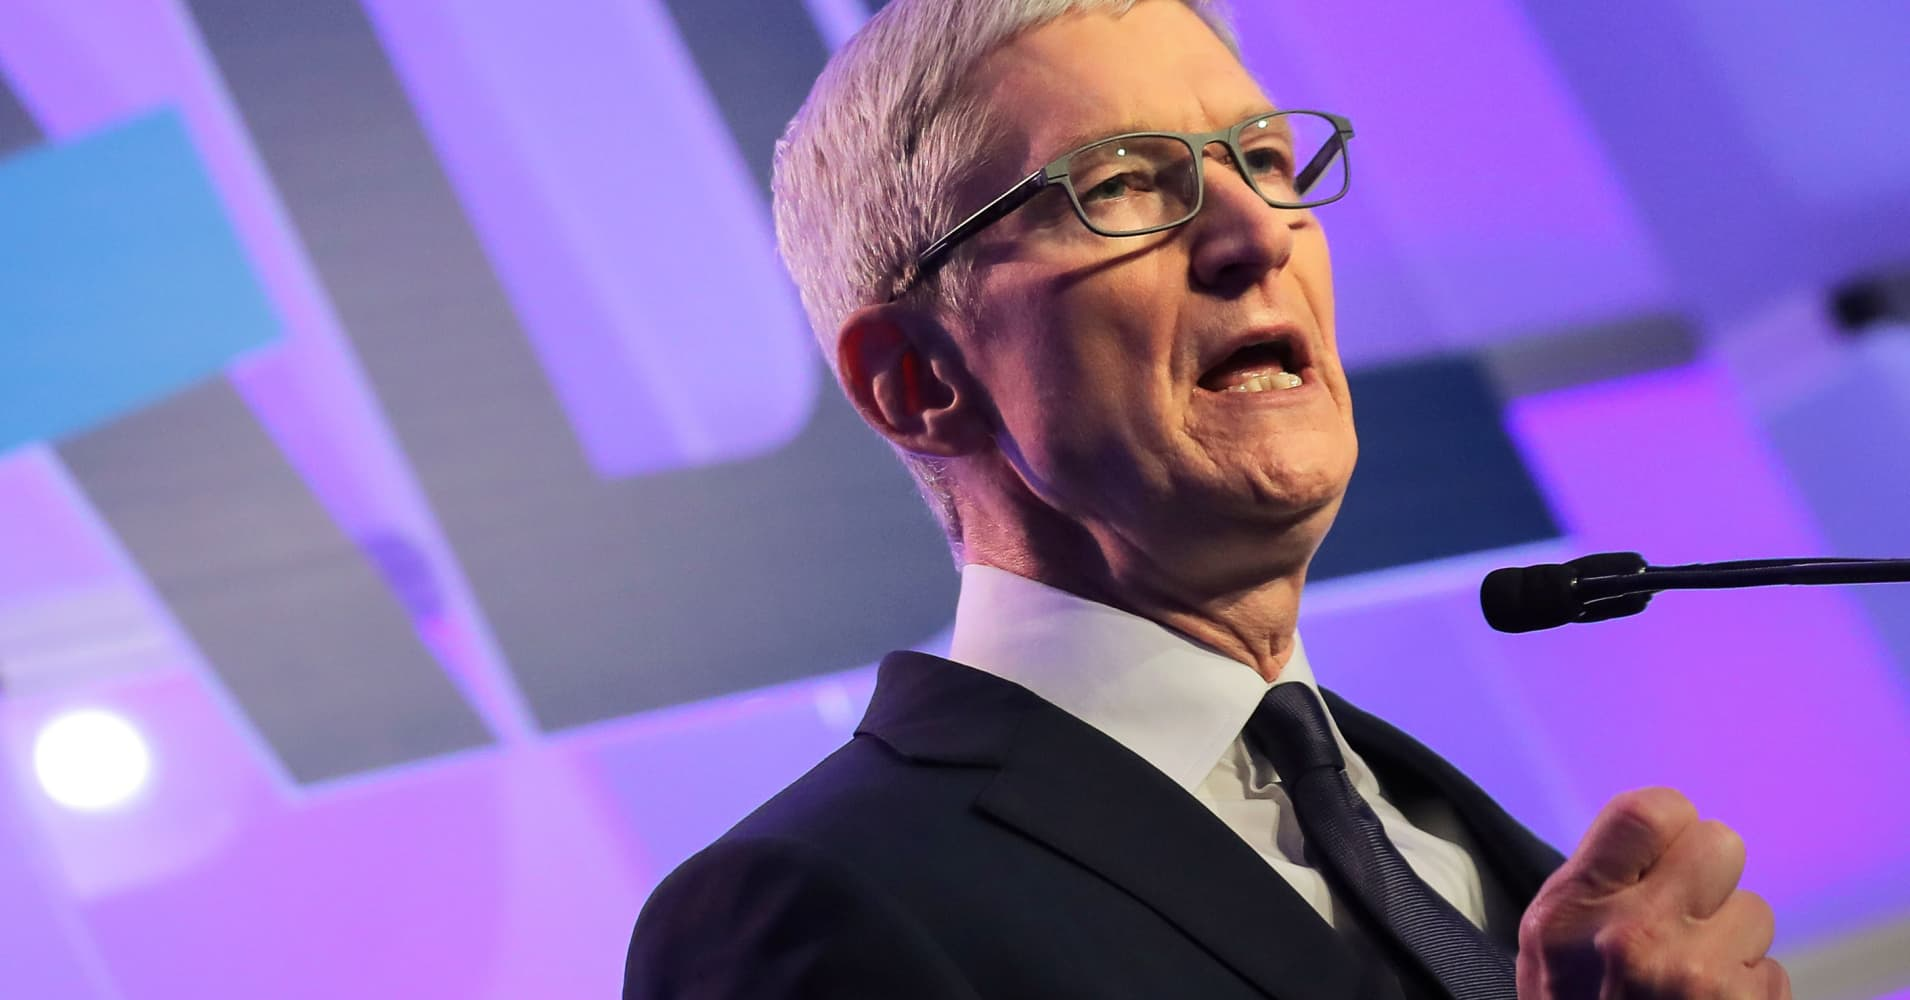 Techmeme: Apple lowers revenue guidance to $84B after previously